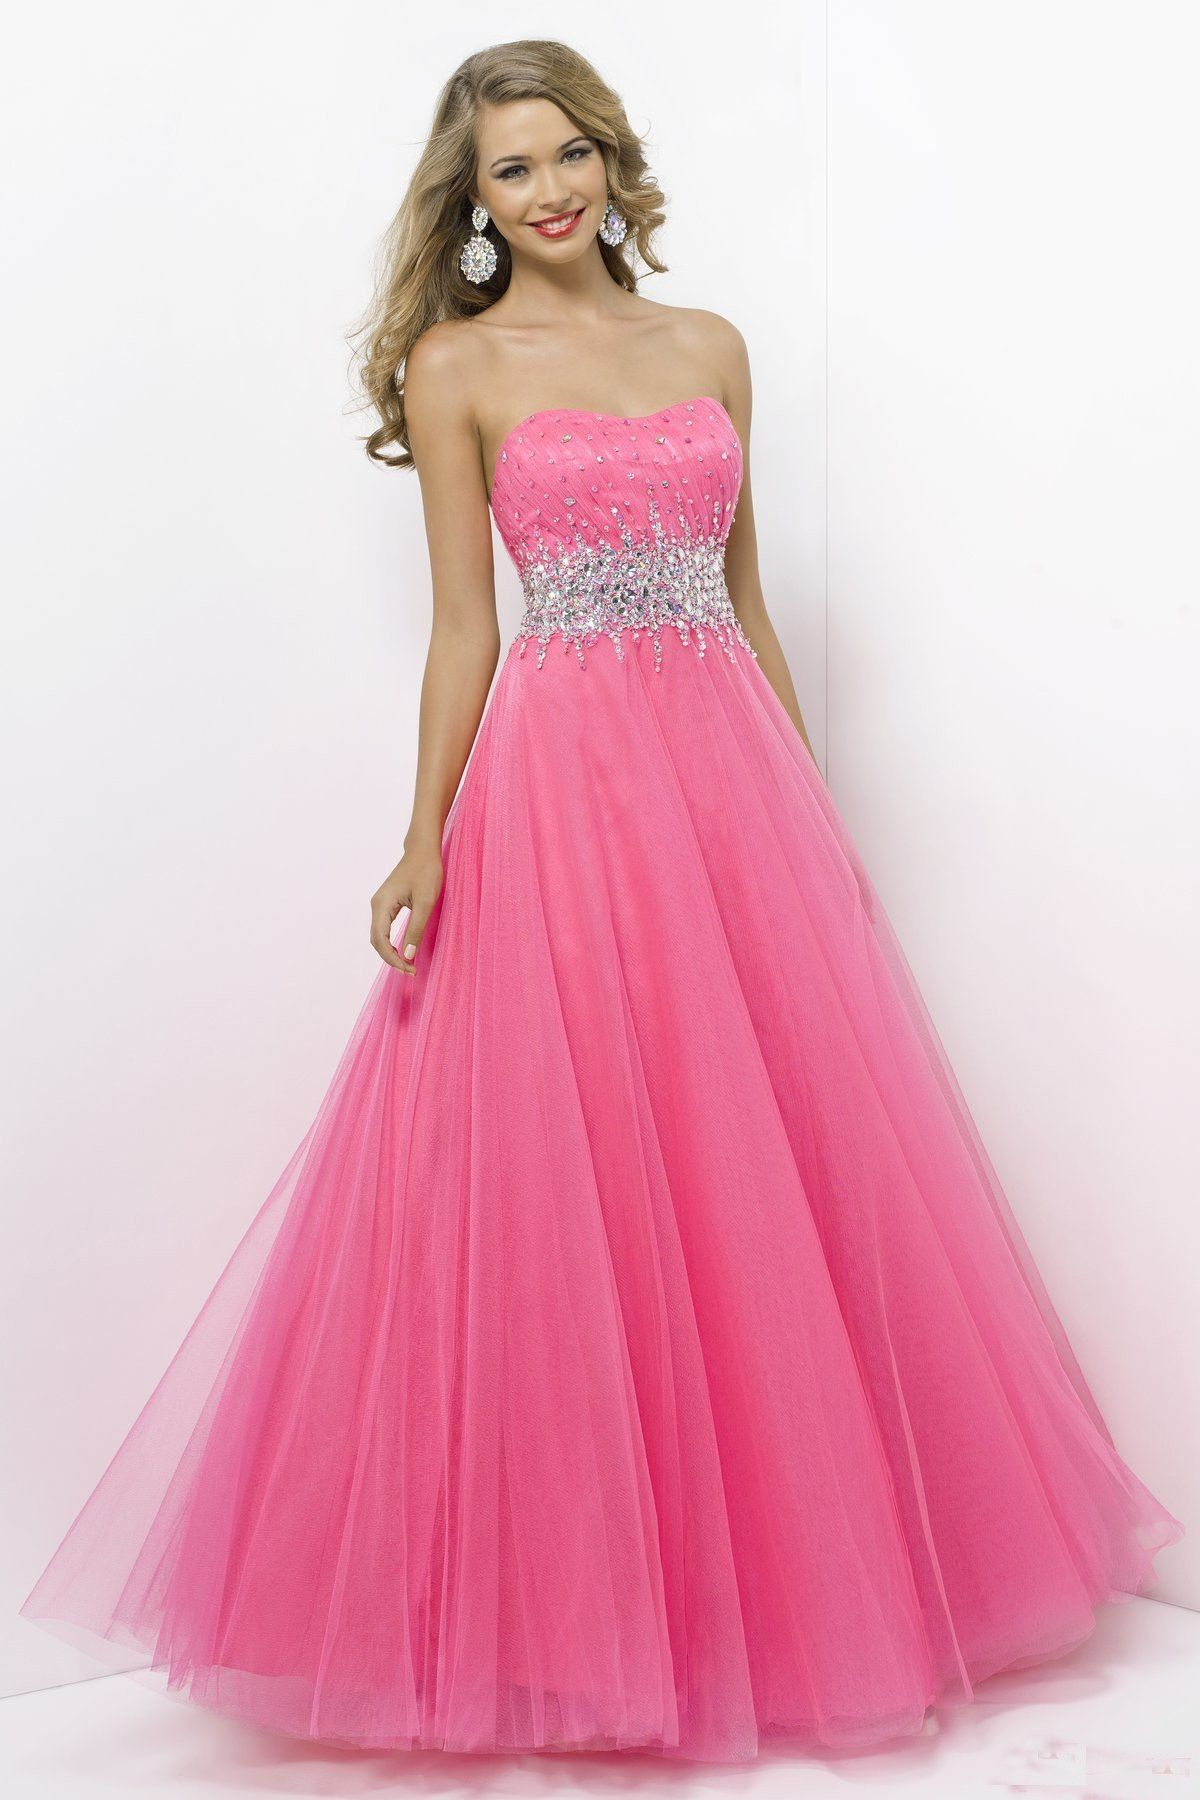 Ball gown prom dresses 2014 - Prom Prom Dresses Prom Dresses For Teens Prom Dresses Long 2014 Strapless Ball Gown